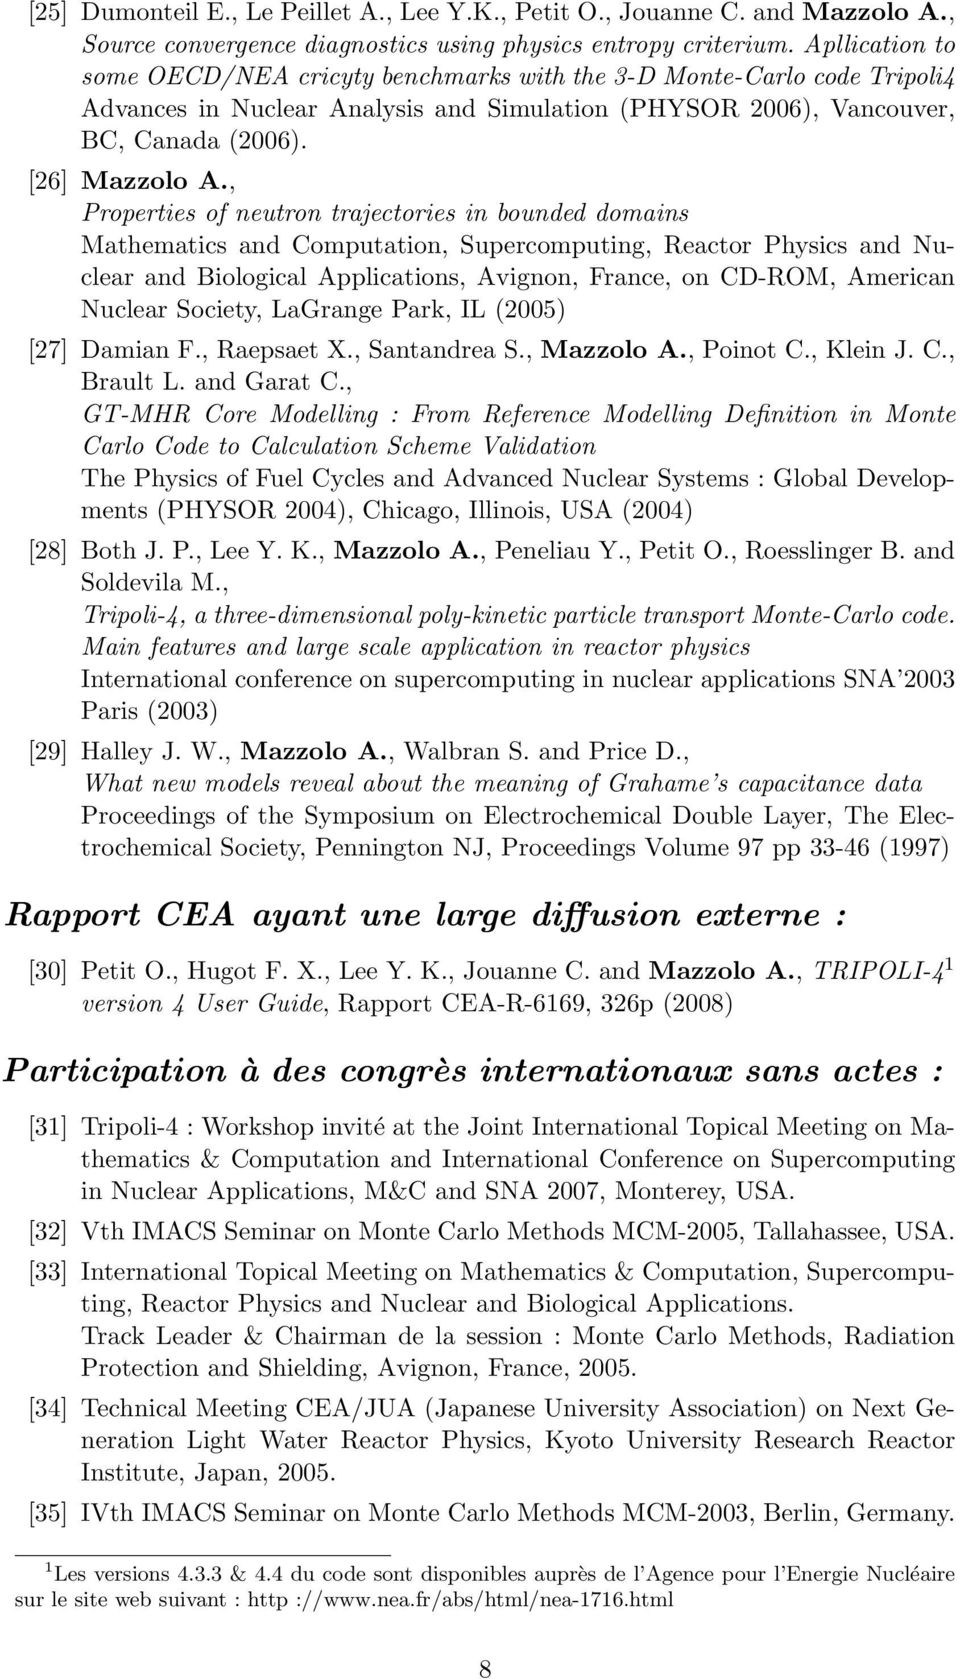 , Properties of neutron trajectories in bounded domains Mathematics and Computation, Supercomputing, Reactor Physics and Nuclear and Biological Applications, Avignon, France, on CD-ROM, American